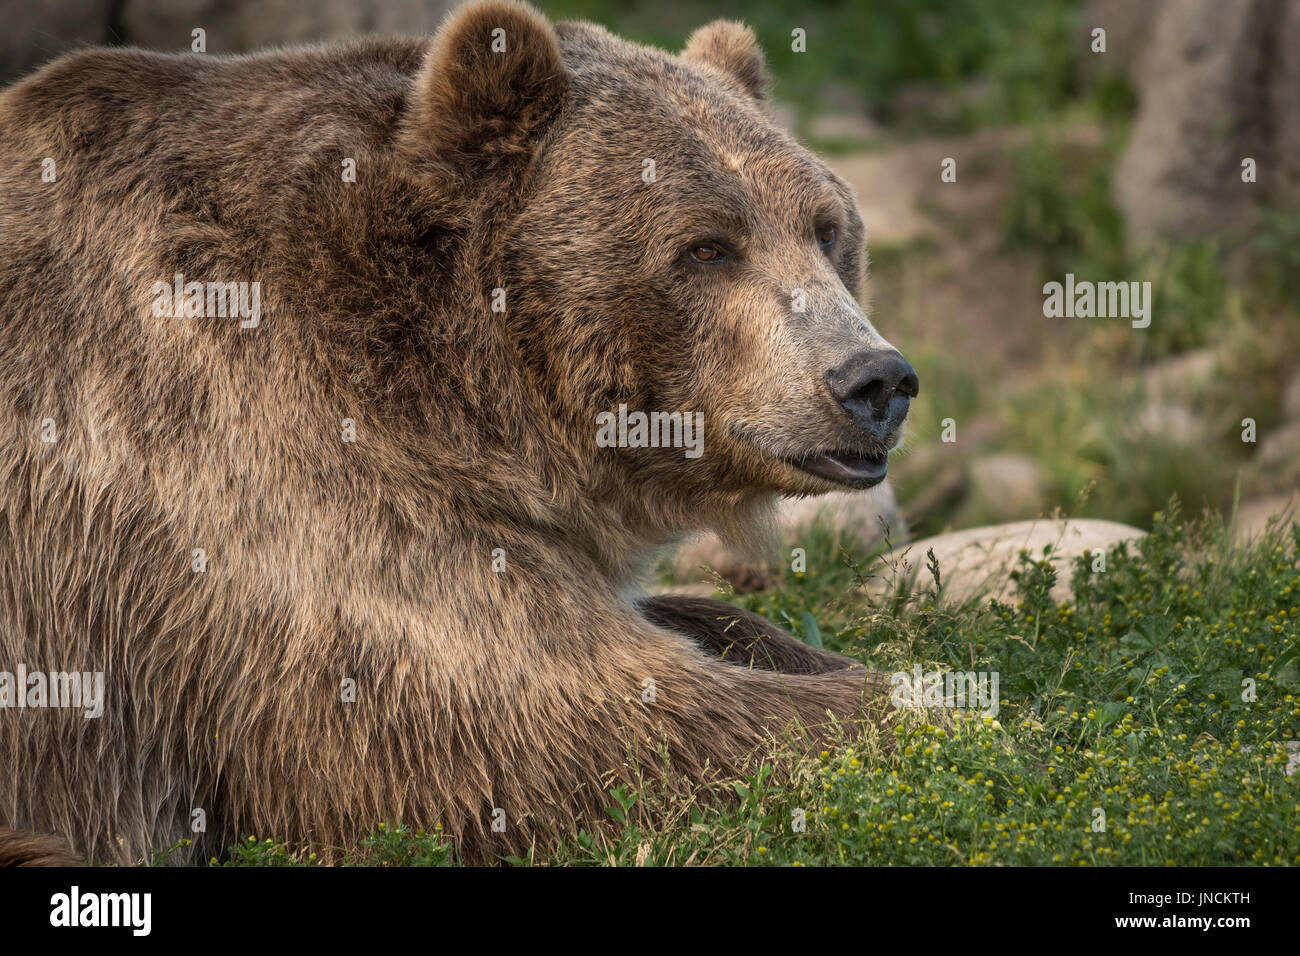 Brutus the grizzly bear at Montana Grizzly Encounter near Bozeman, Montana. - Stock Image